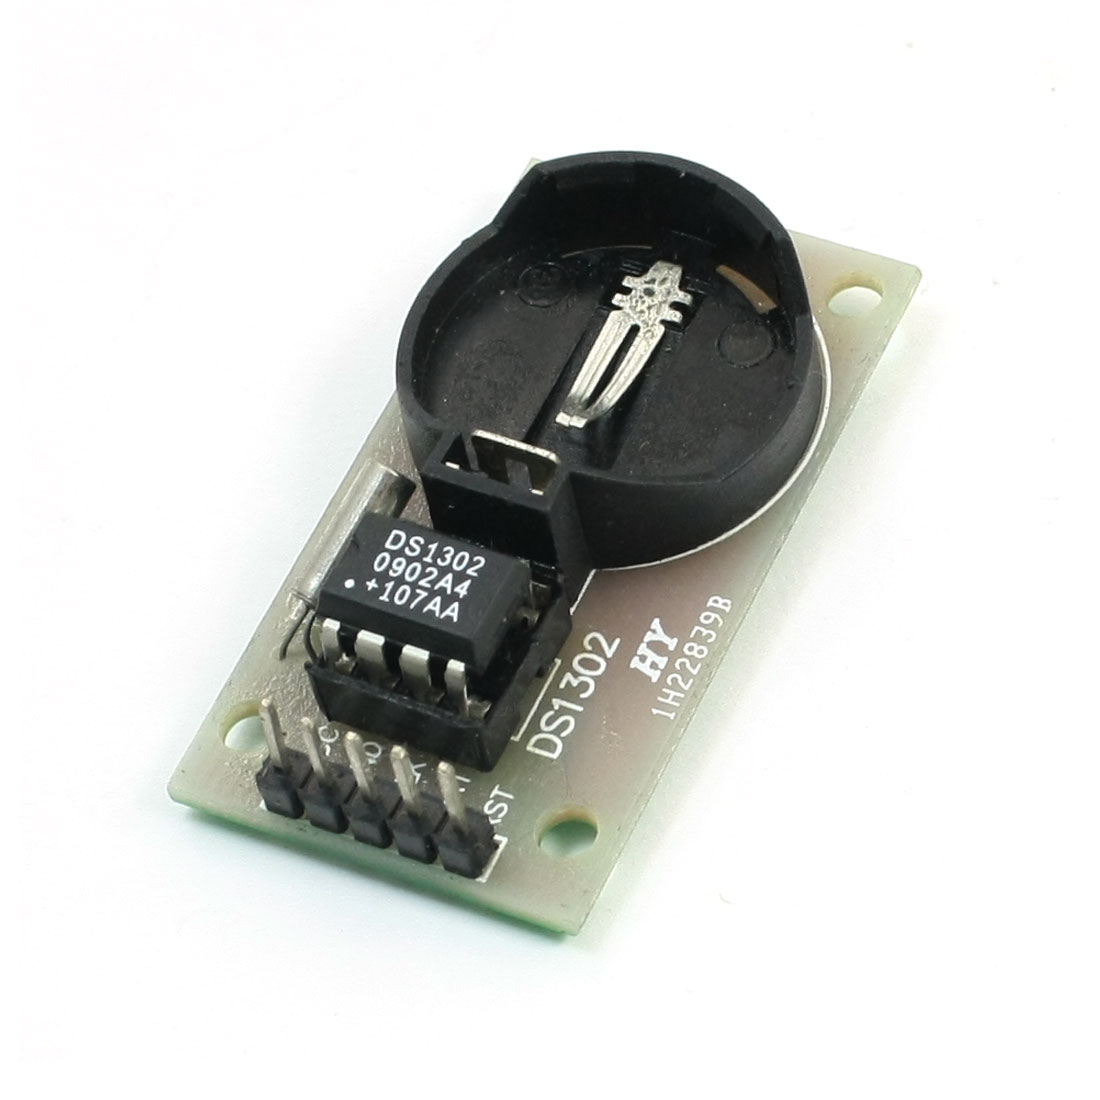 Battery Operation Tiny DS1302 RTC Real Time Clock Module